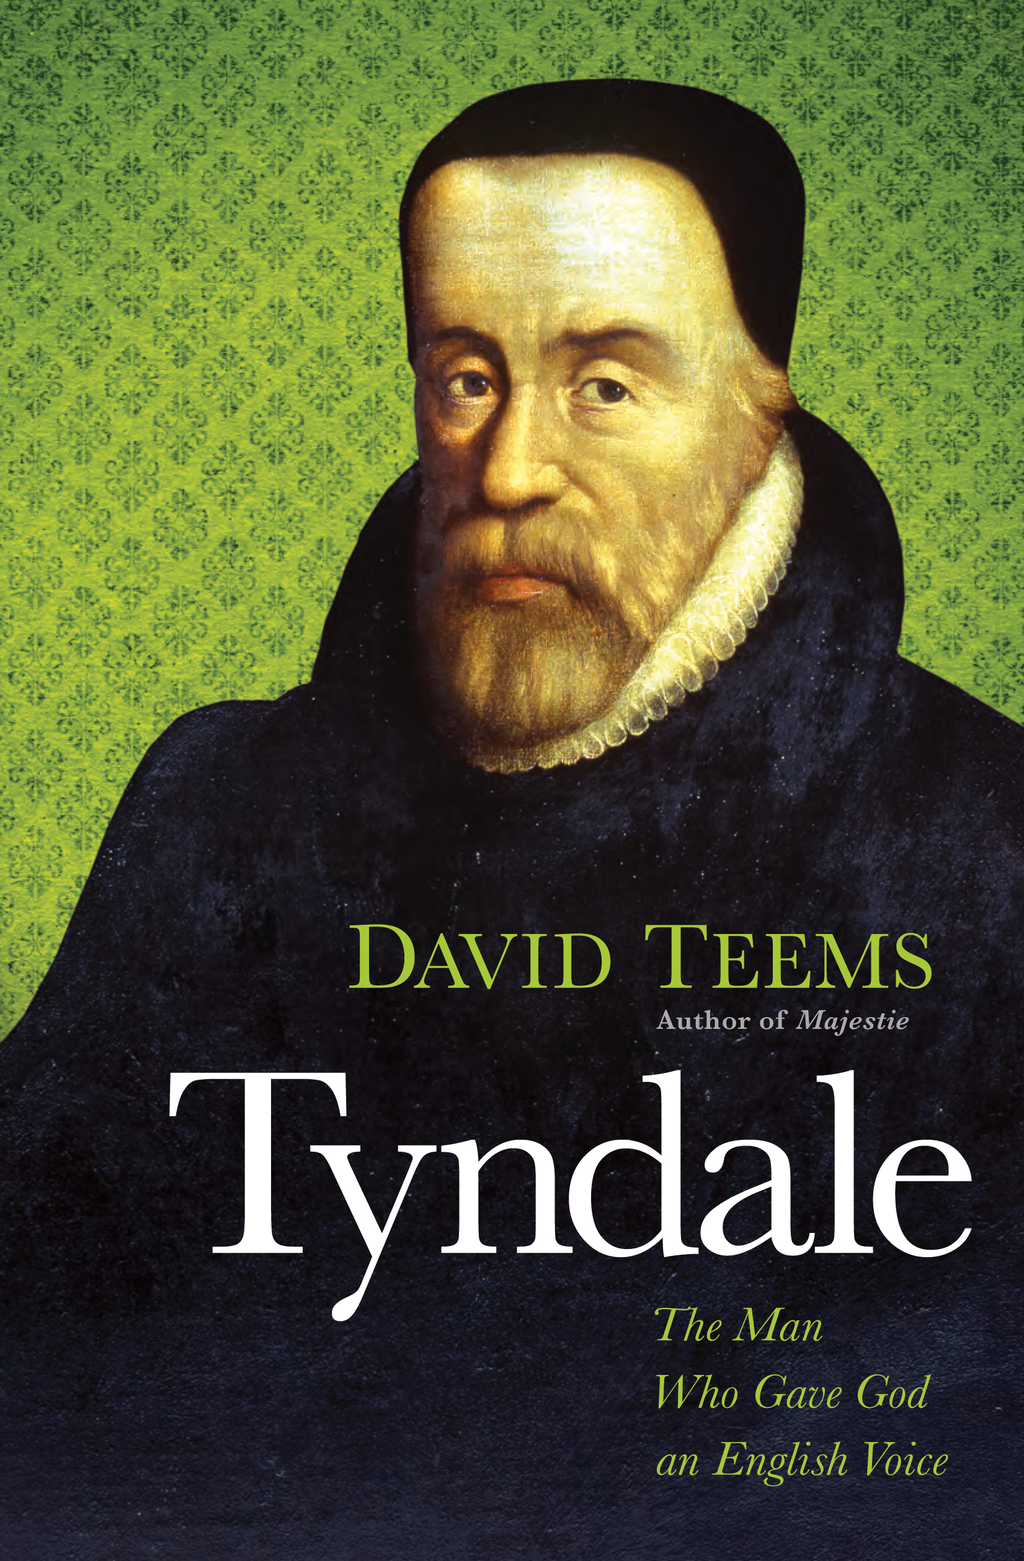 Tyndale By: David Teems